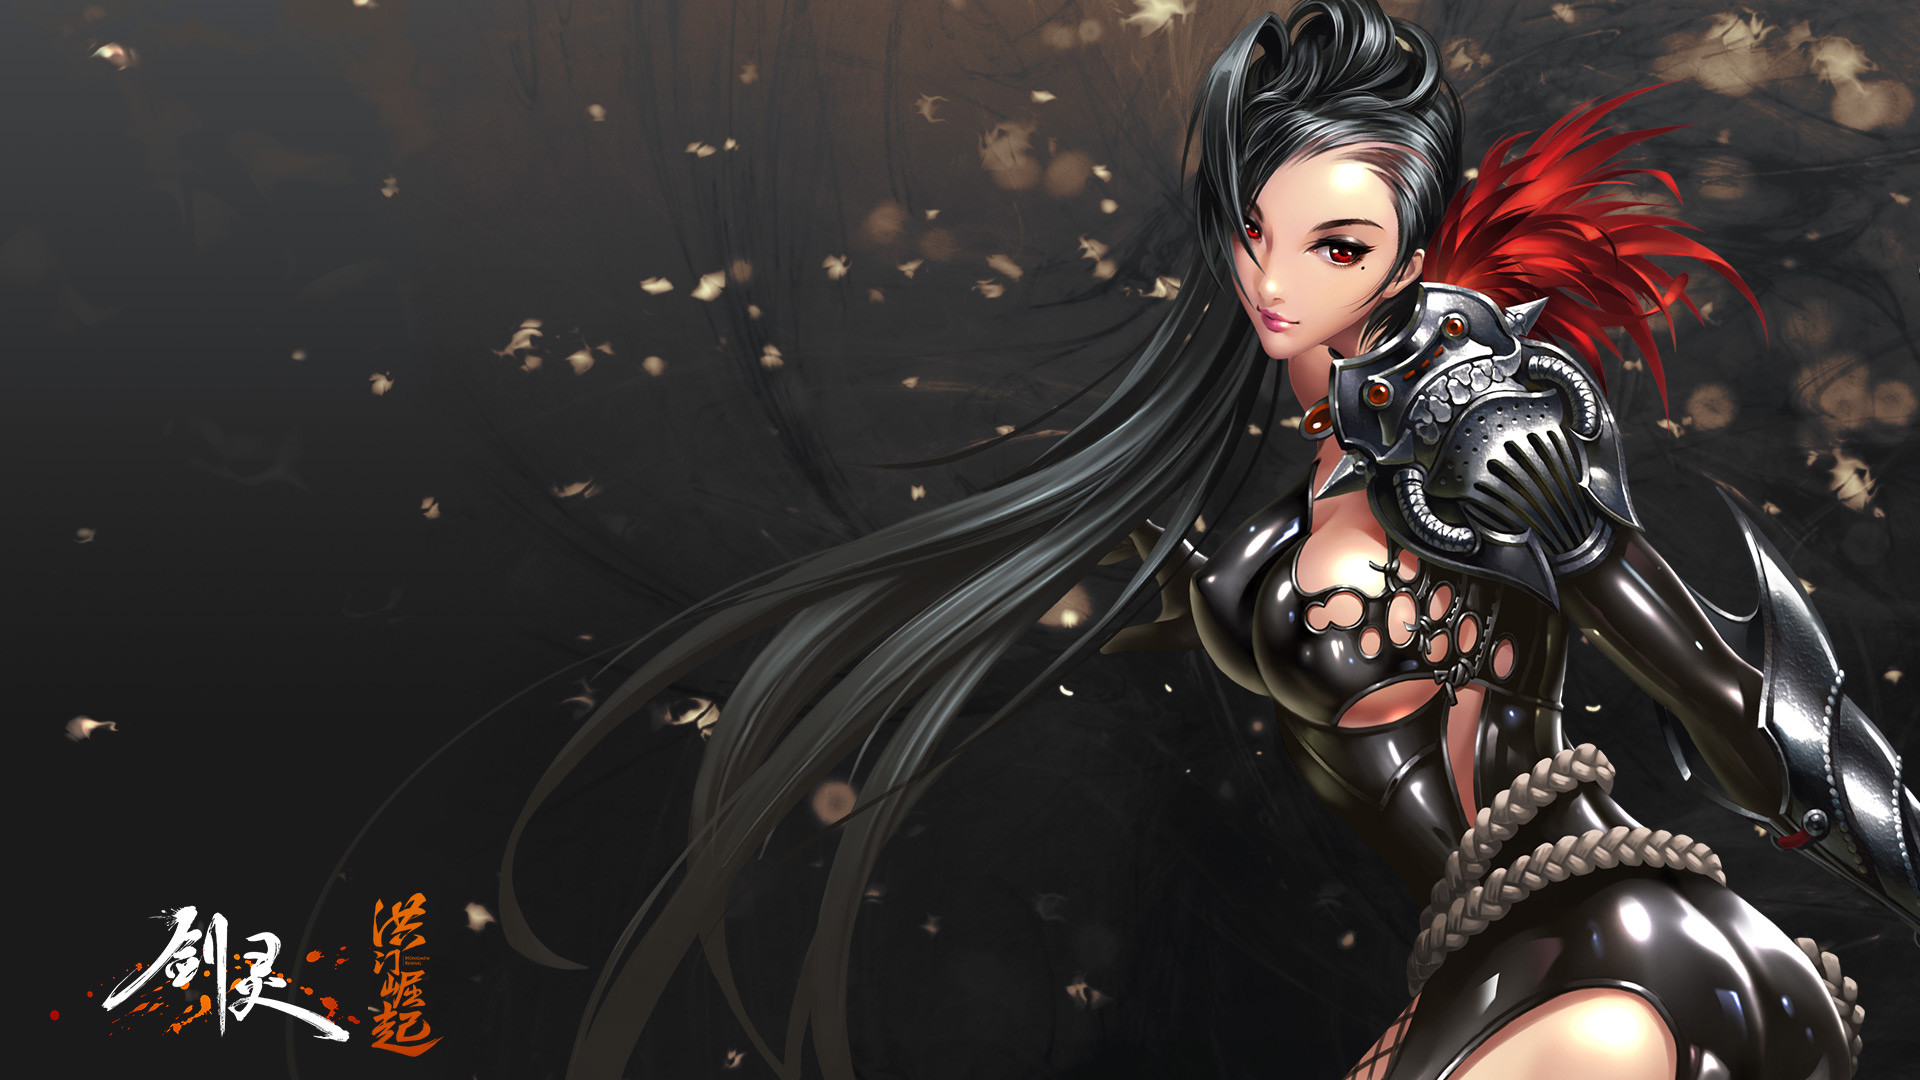 Blade And Soul Wallpaper: Blade And Soul Wallpaper (81+ Images